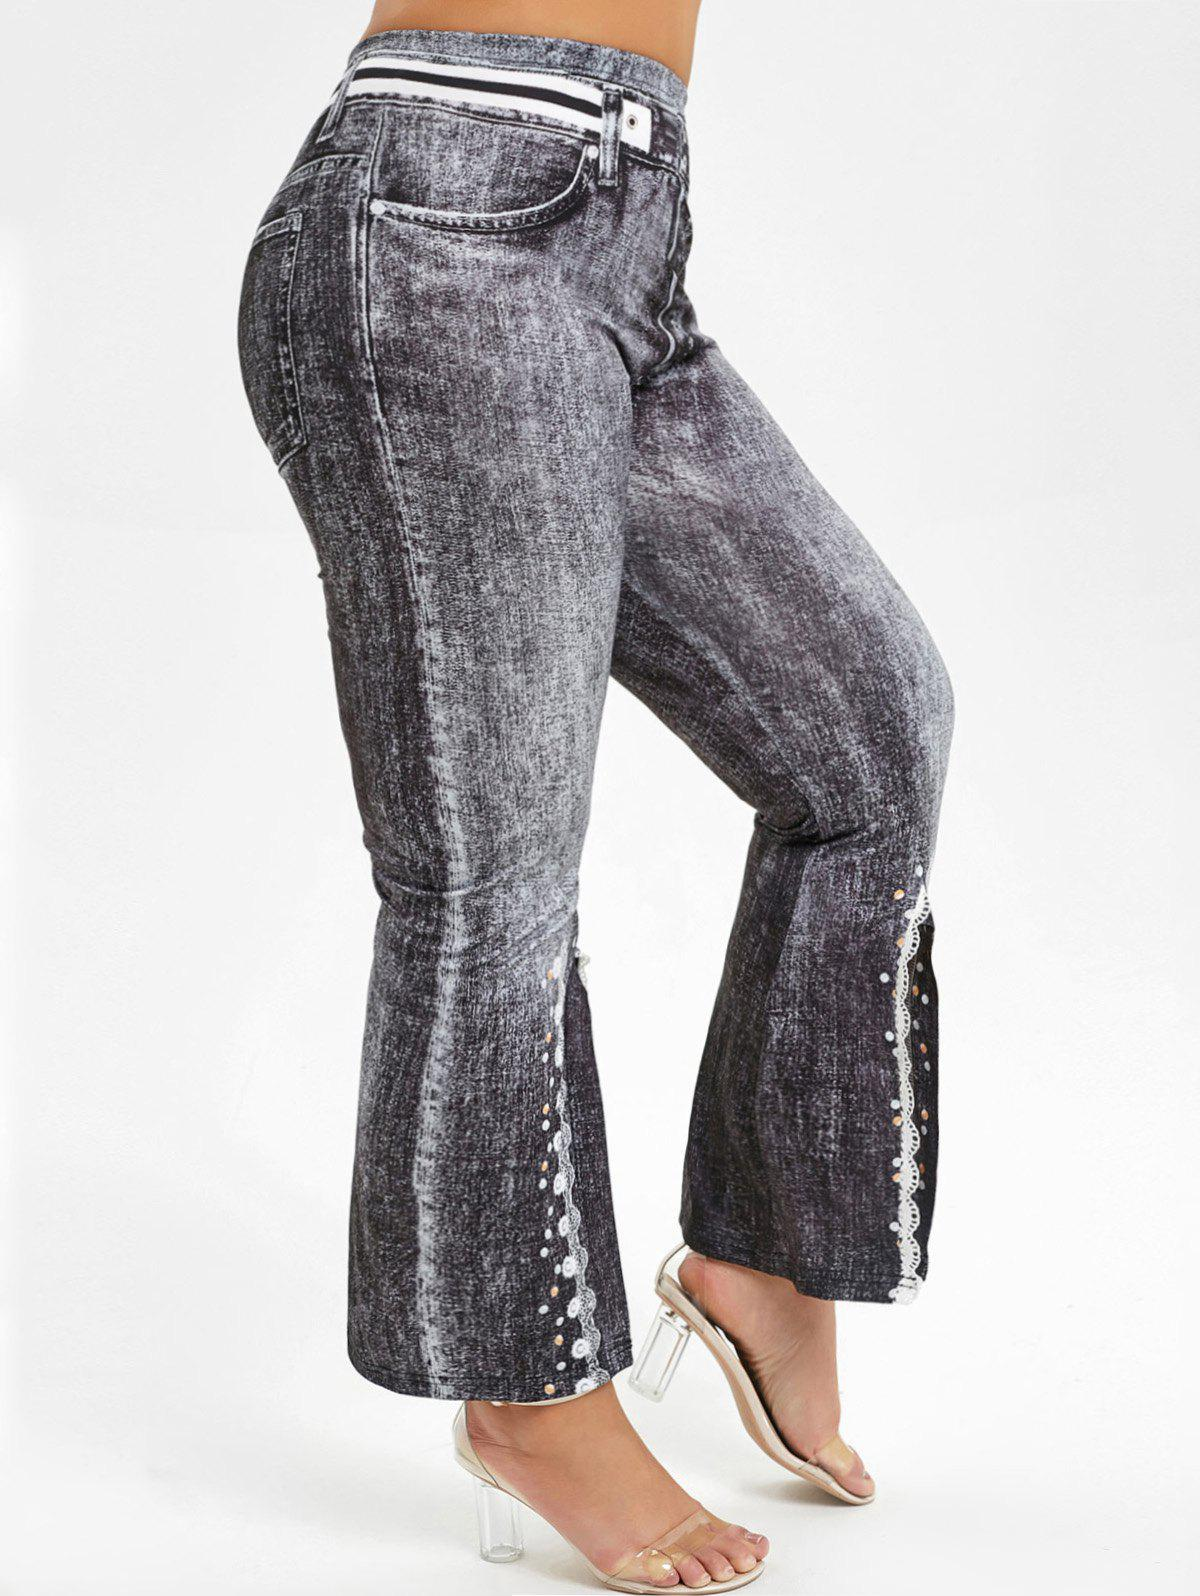 Sale Printed Slit Jeggings Plus Size Boot Cut Pants